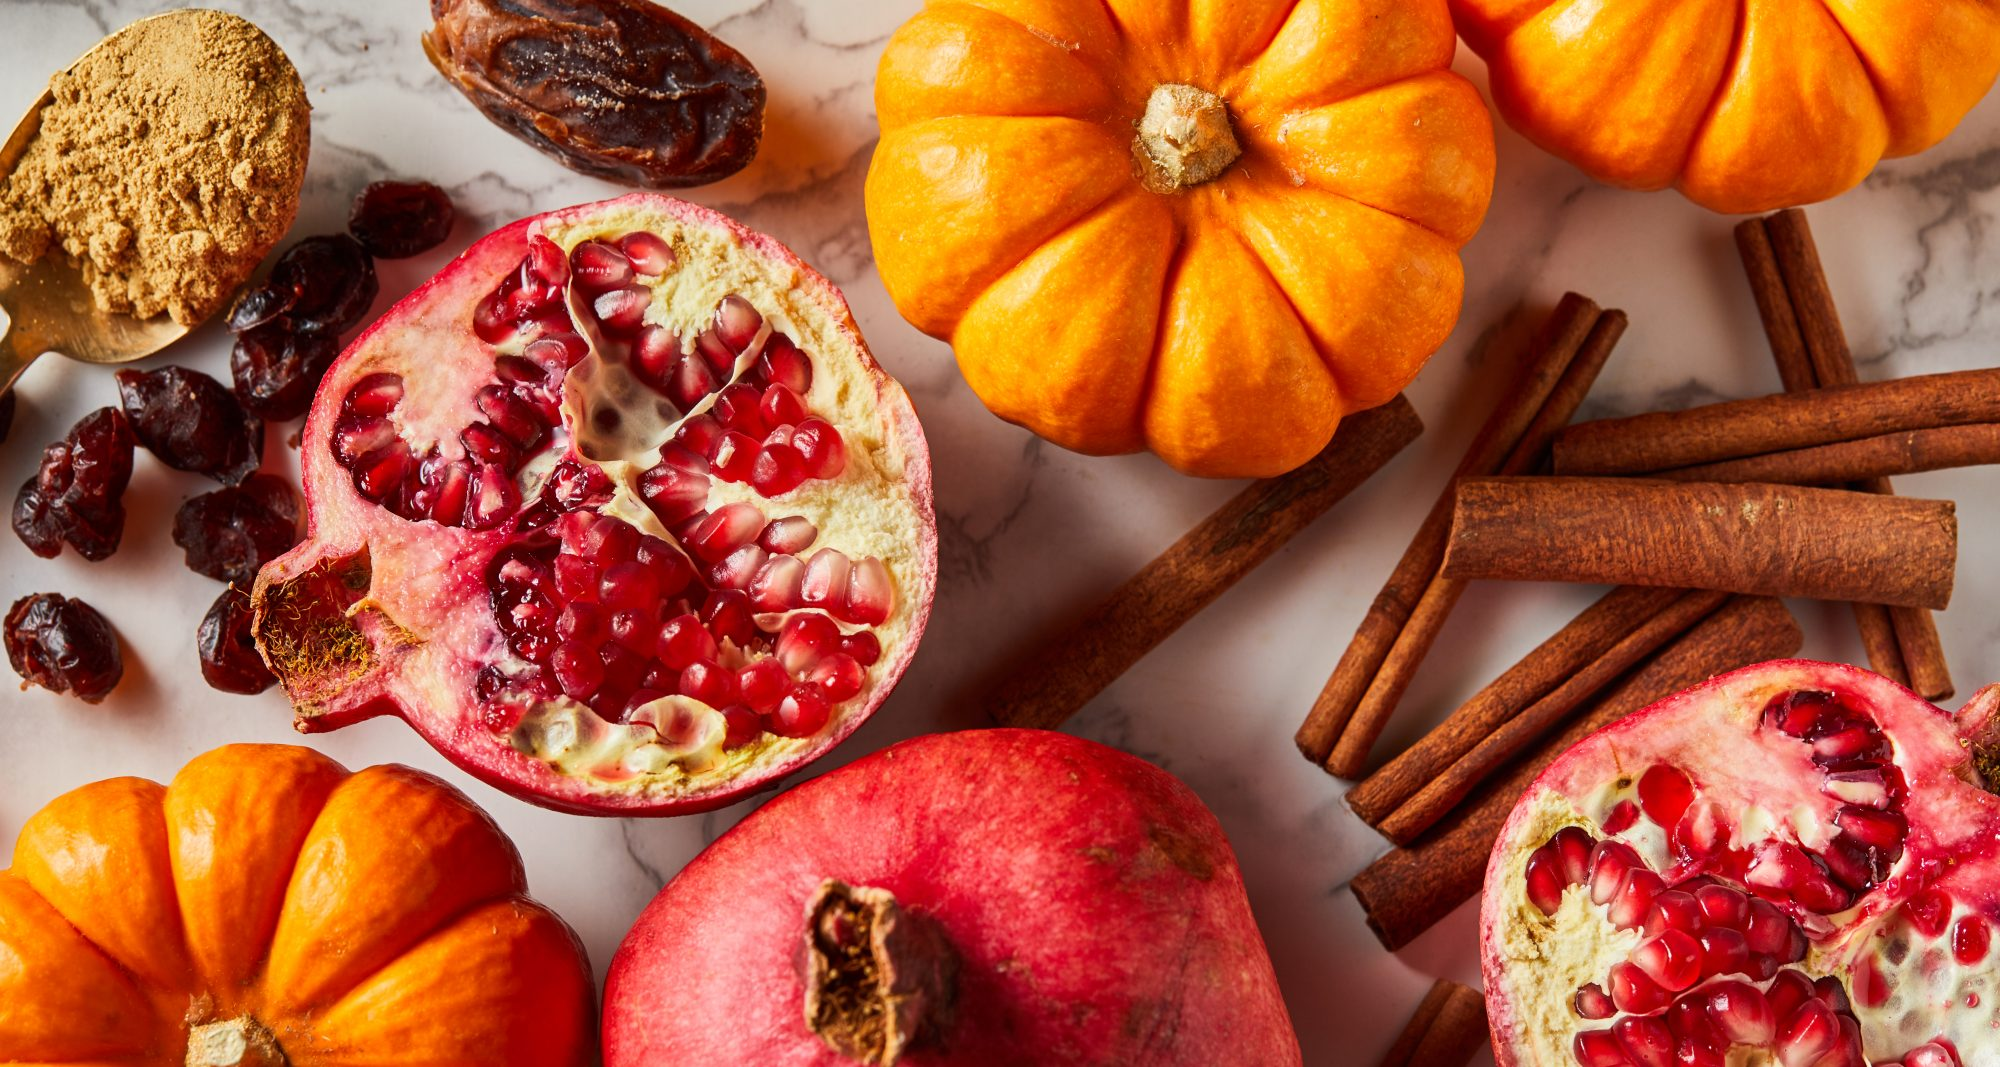 Eat wise this fall; 7 superfoods for a heathy October